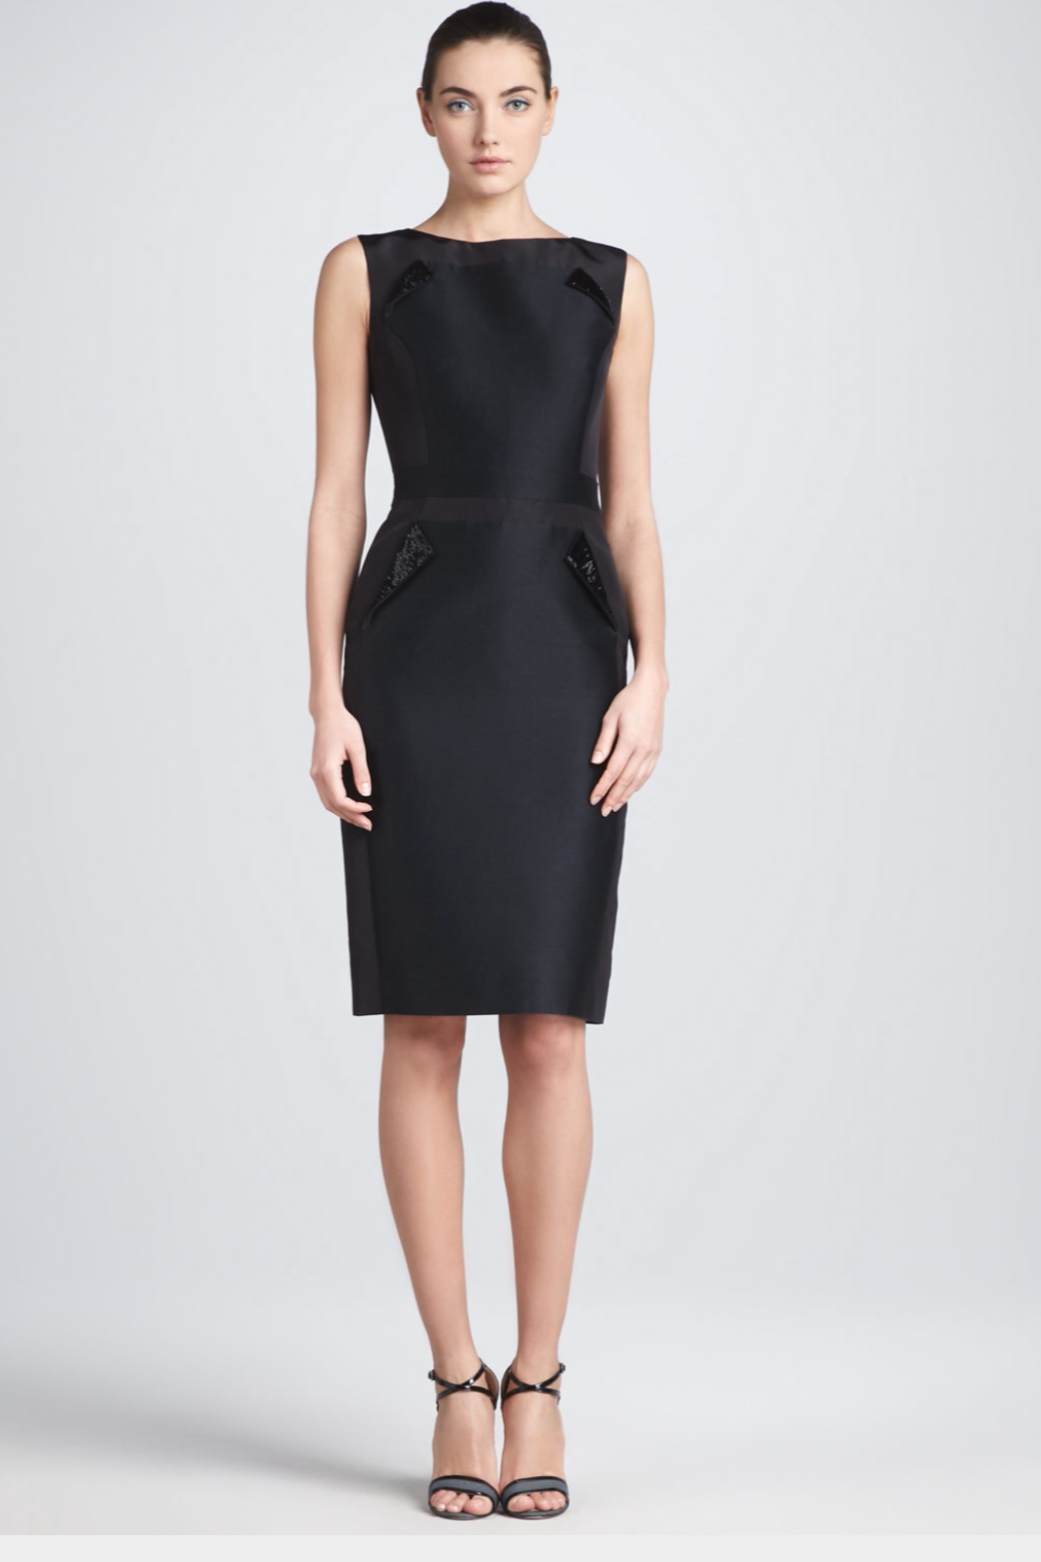 sheath dress – house of style stories